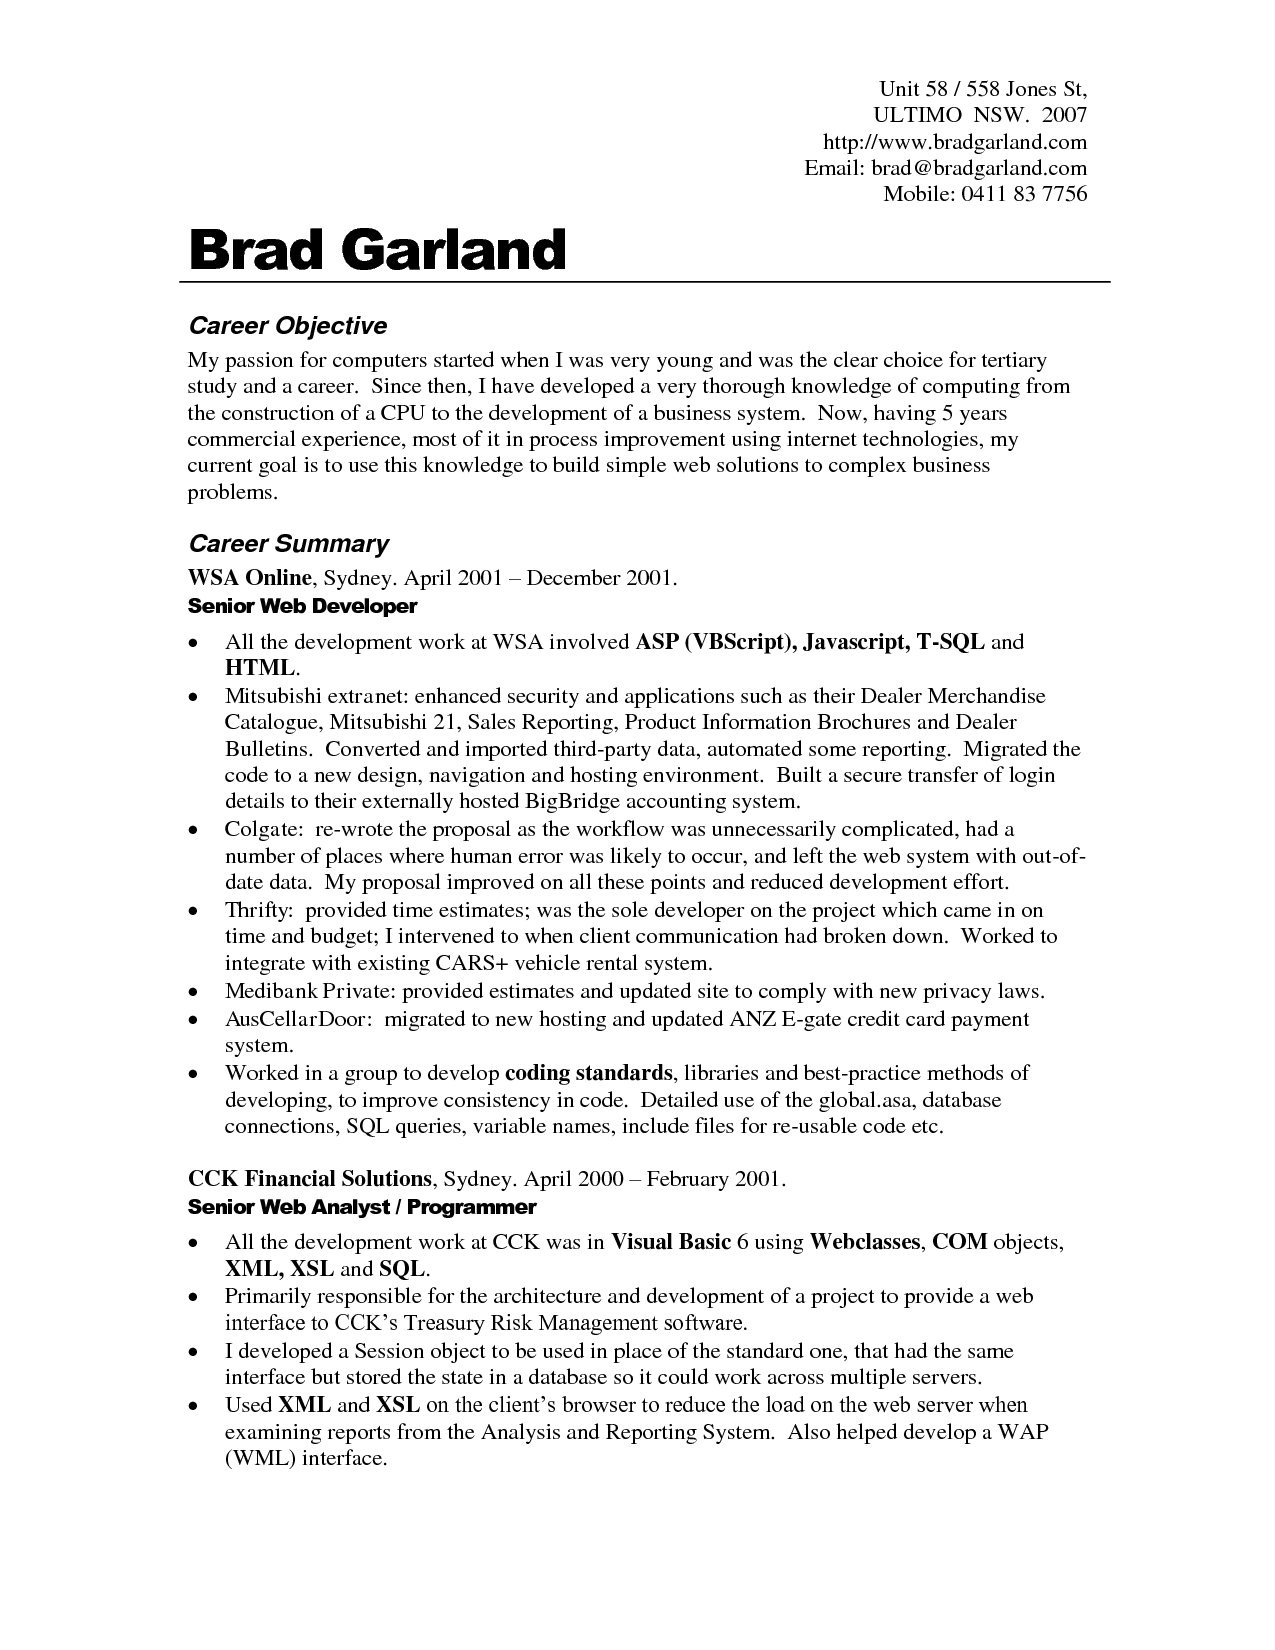 Resume Objective Statement Resume Objectives Examples Best Templateresume Objective Examples